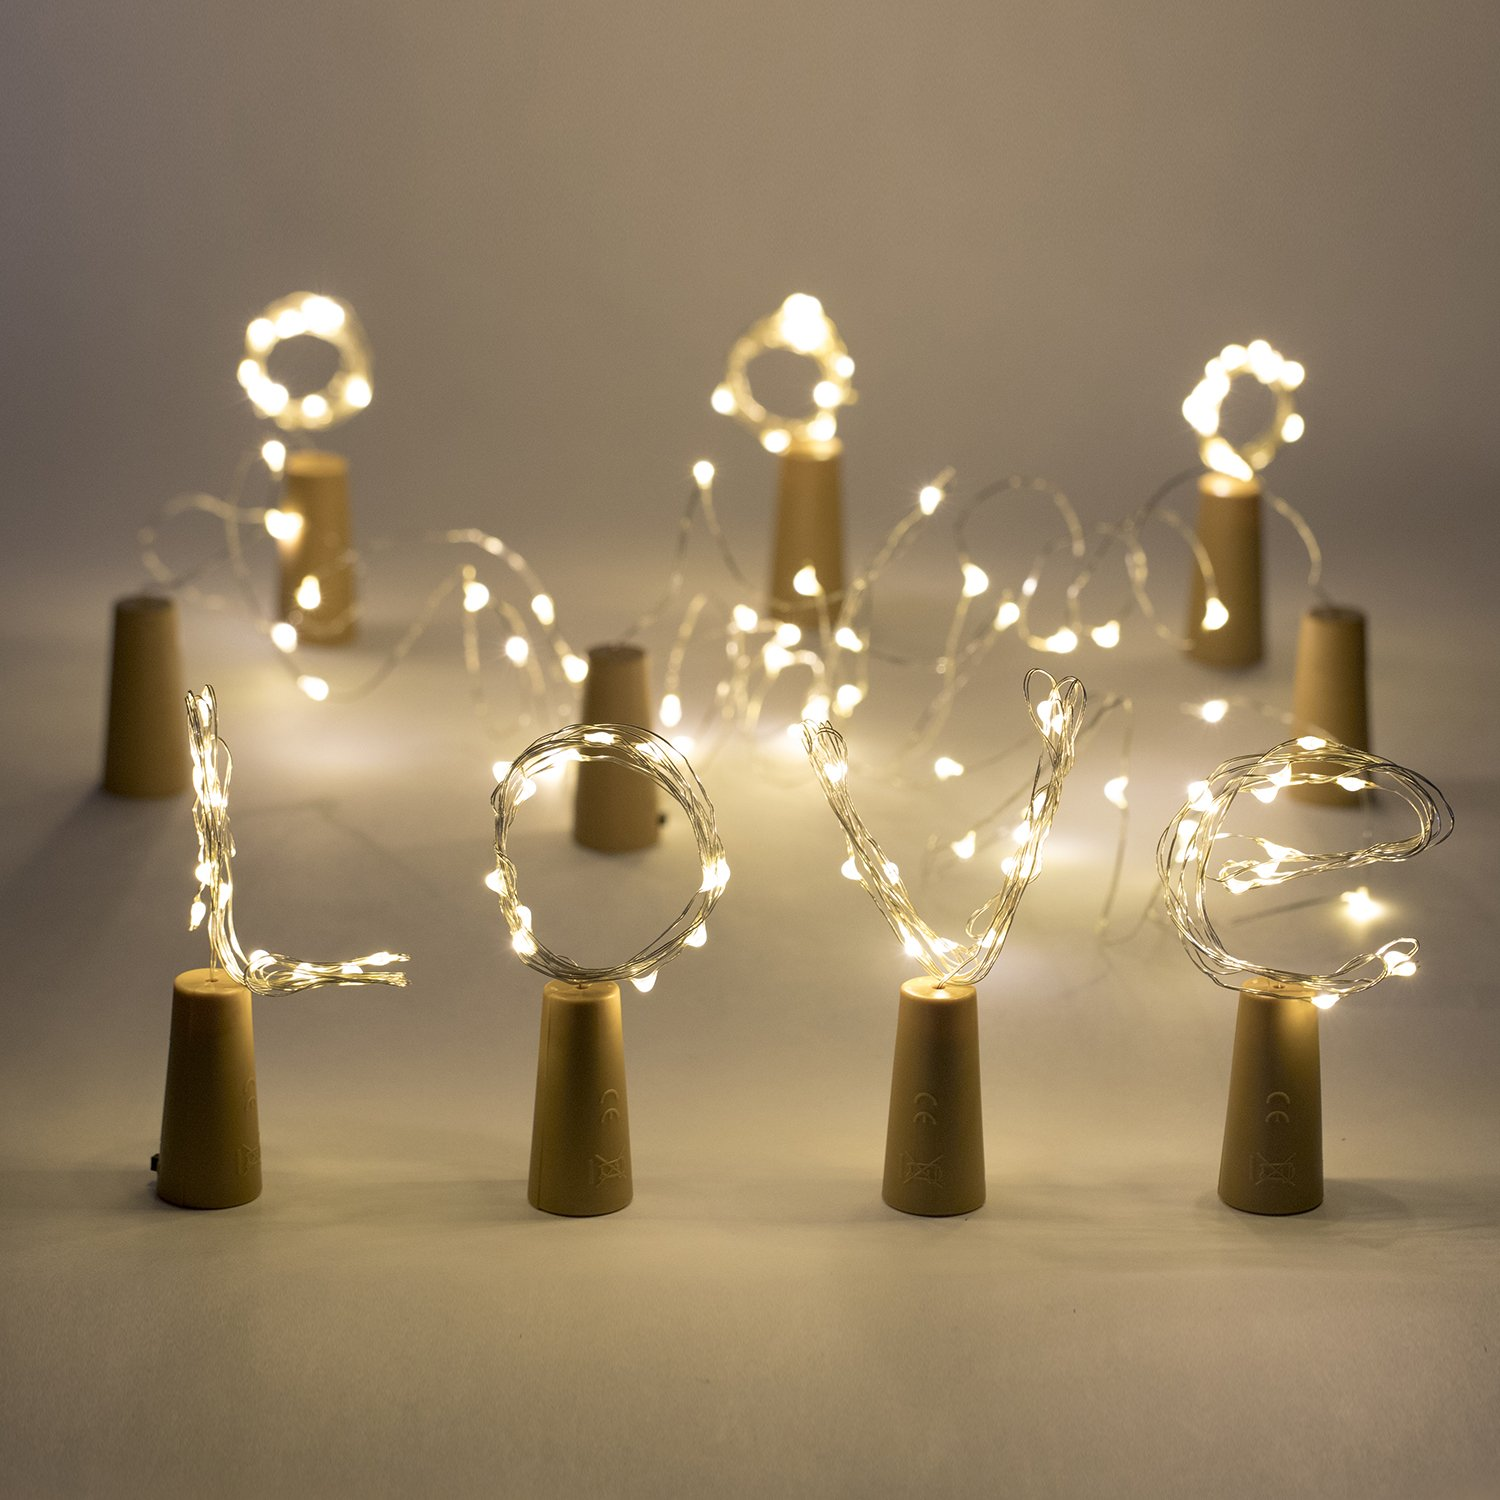 LED Wine Bottle String Lights Cork Shaped Glass Stopper Lamp Christmas DIY for New YearChristmas Valentines Wedding Decoration